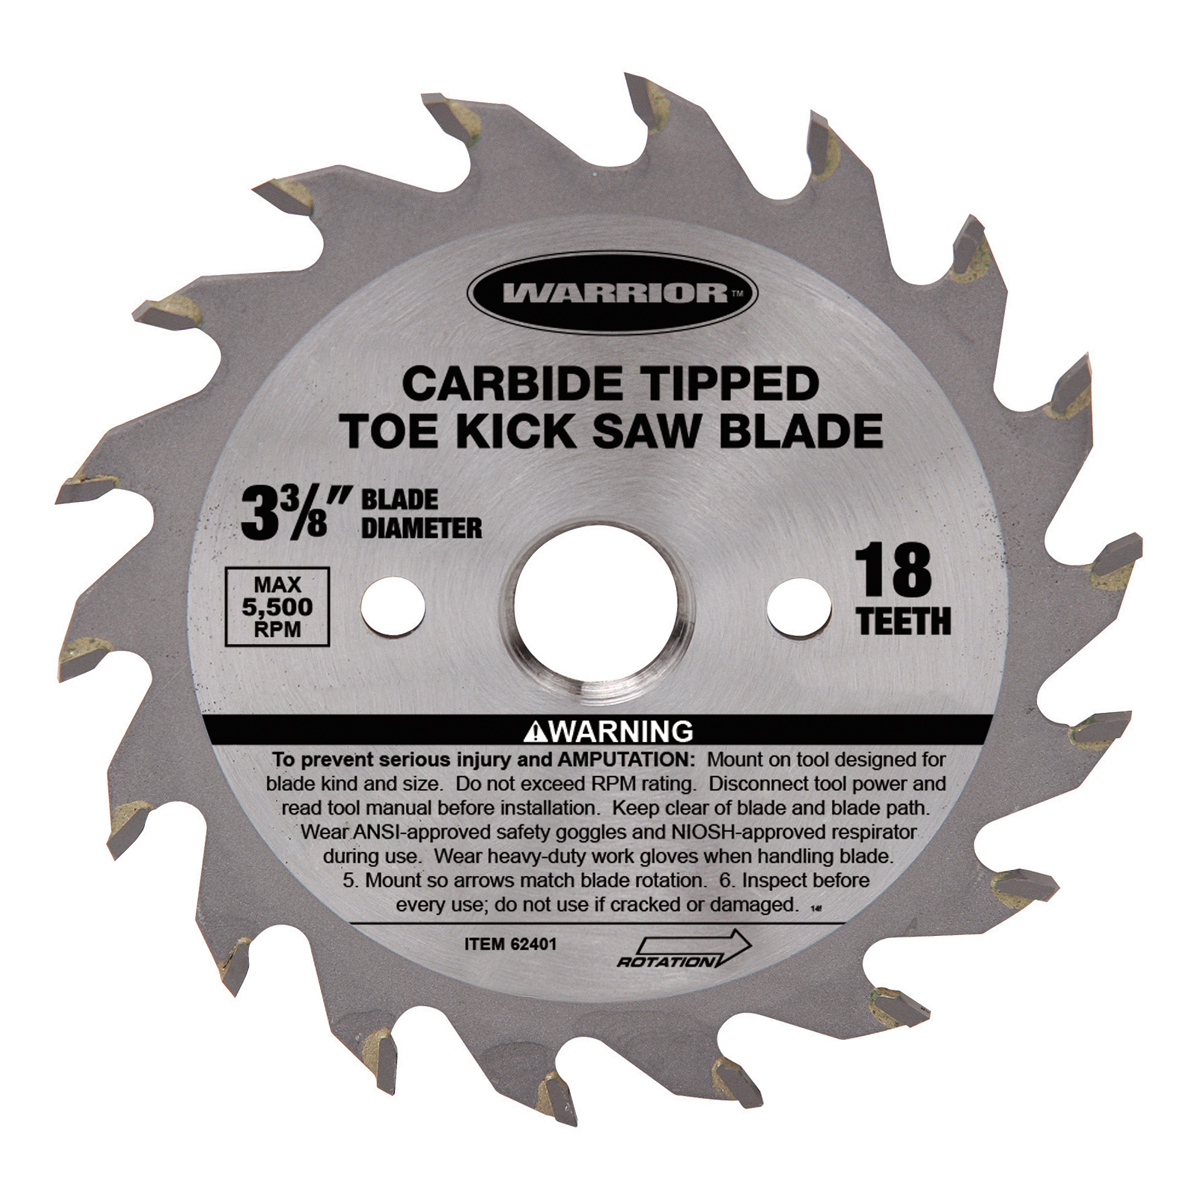 3 38 in 18t toe kick circular saw blade 18t toe kick circular saw blade greentooth Images